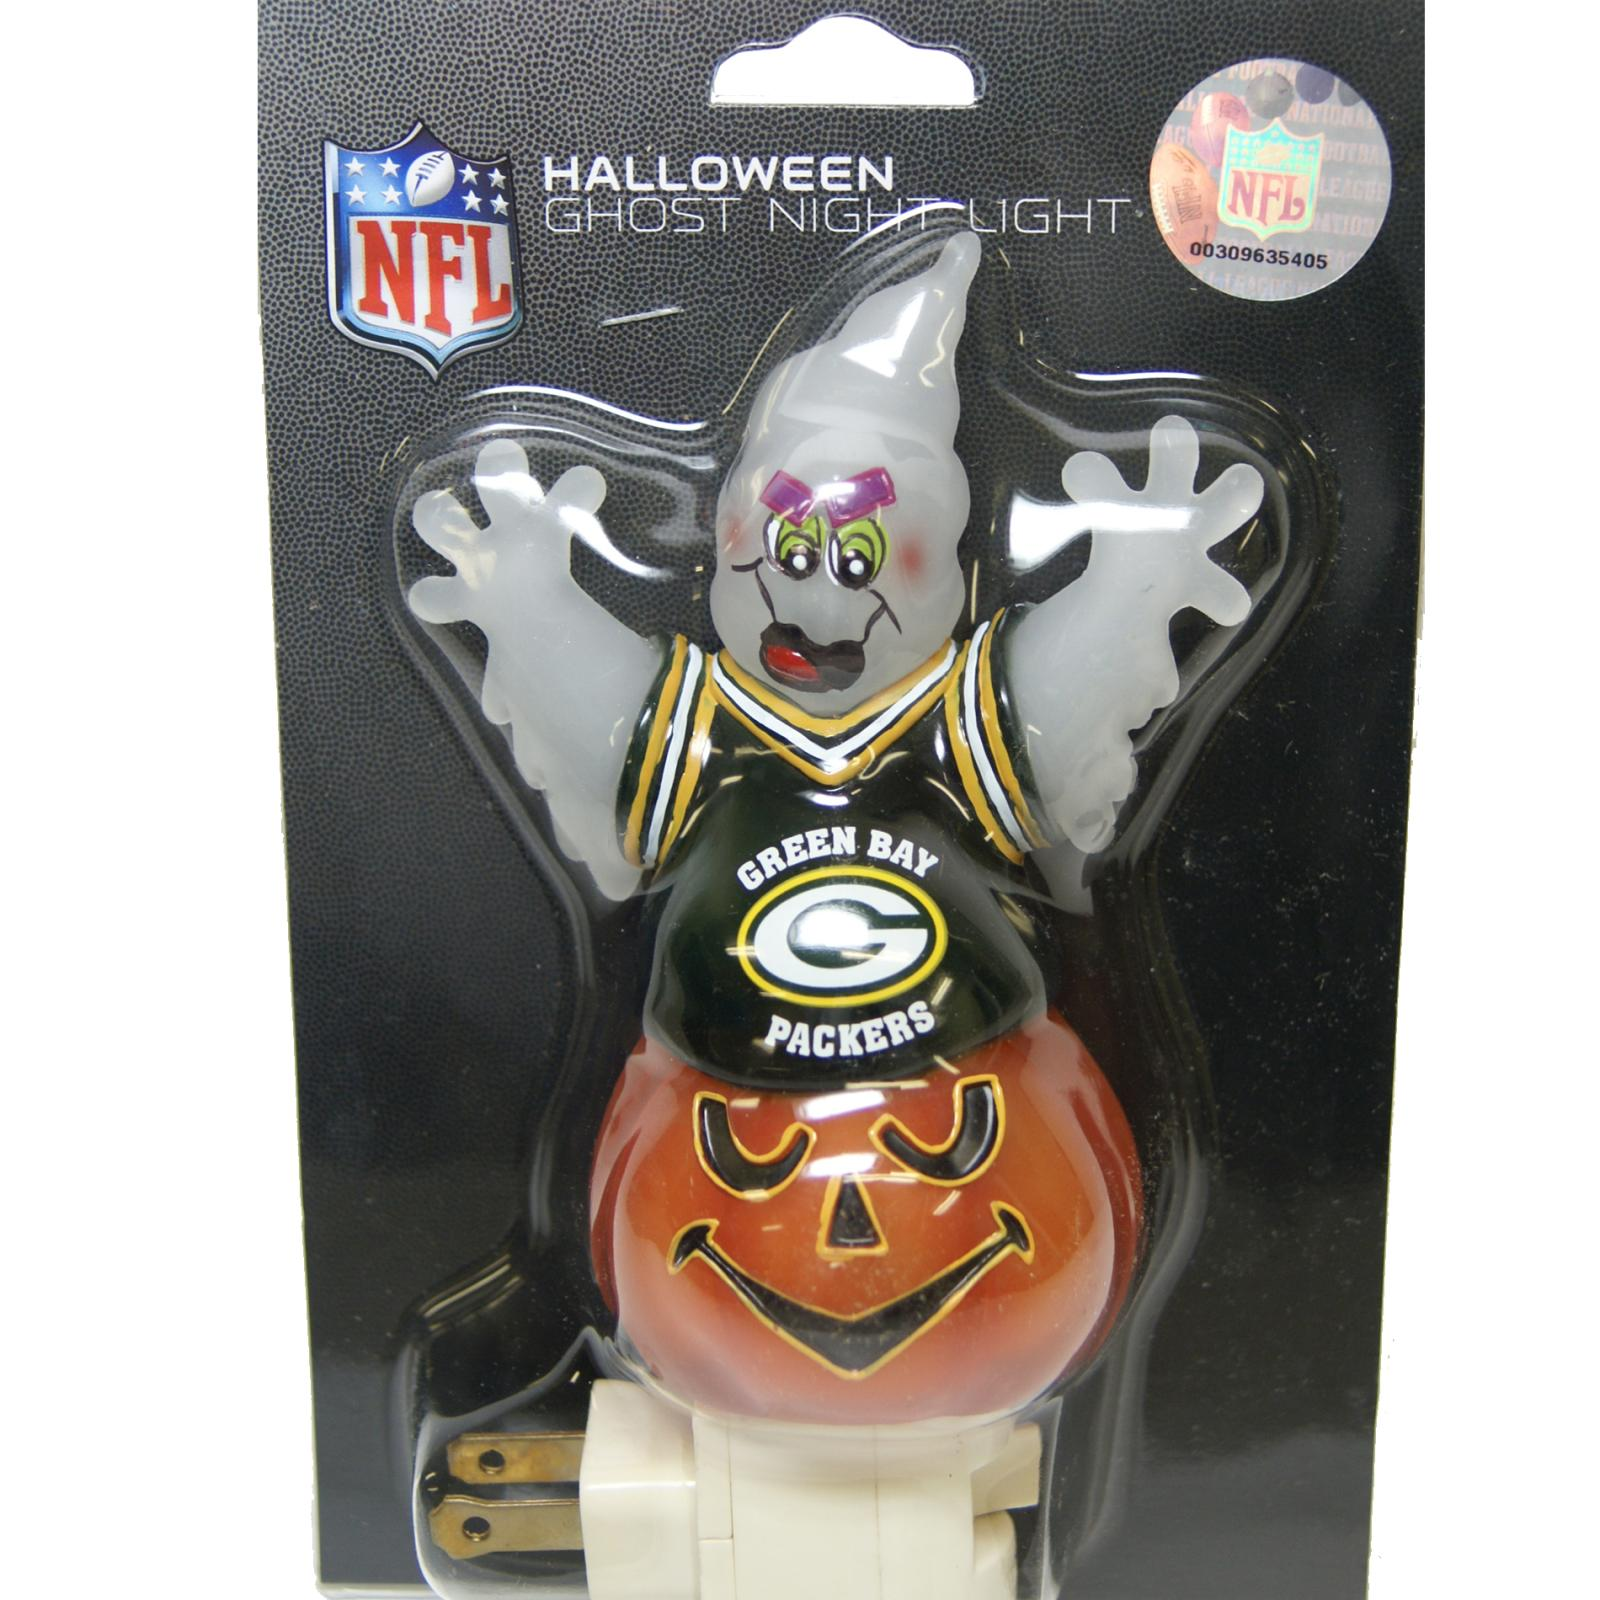 Green Bay Packers Halloween Ghost Night Light